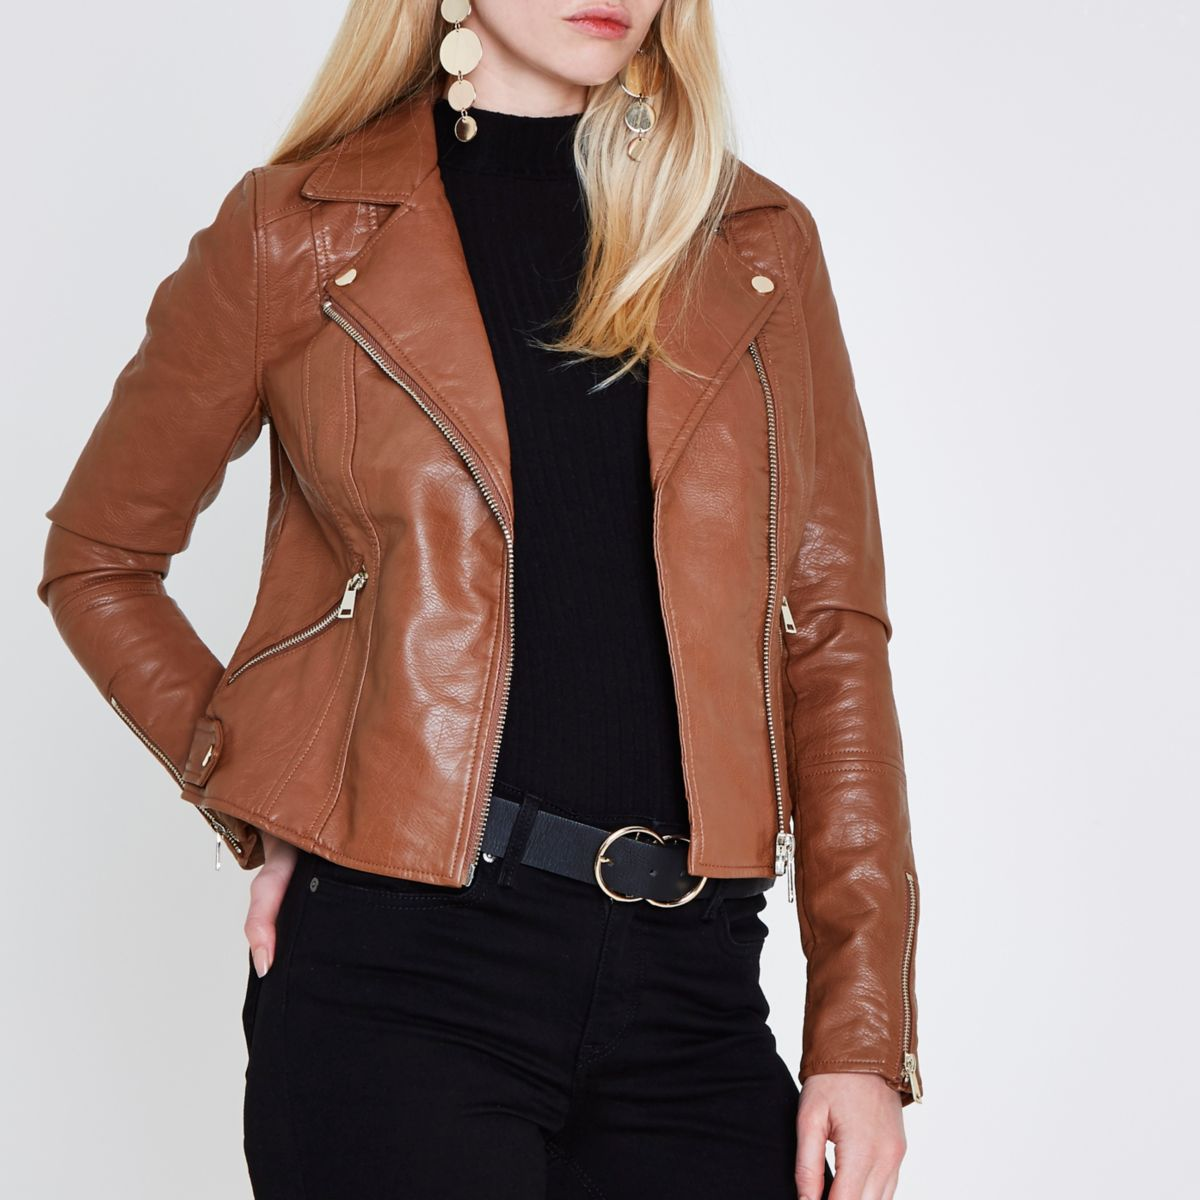 Shop our Collection of Women's Faux Leather Jackets at rusticzcountrysstylexhomedecor.tk for the Latest Designer Brands & Styles. FREE SHIPPING AVAILABLE! Tan/Beige (7) White (1) Fabric Bar III Flyaway Faux-Leather Jacket, Created for Macy's.